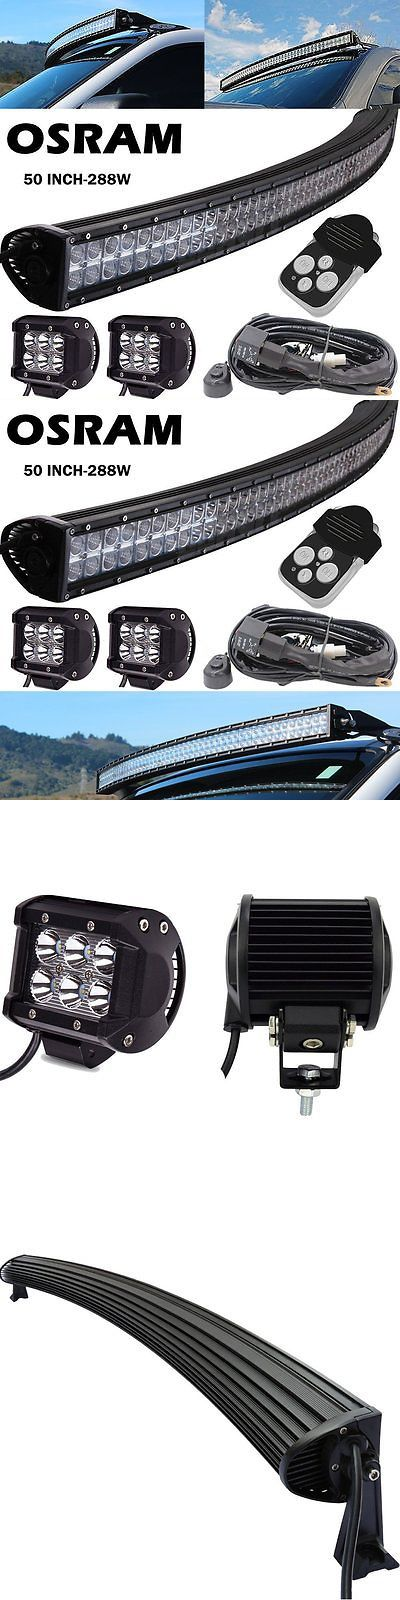 Car Lighting: Curved Uproof 50 Led Work Light Bar Atv Utv Rzr Can Am Polaris Rhino Cadillac -> BUY IT NOW ONLY: $128.79 on eBay!